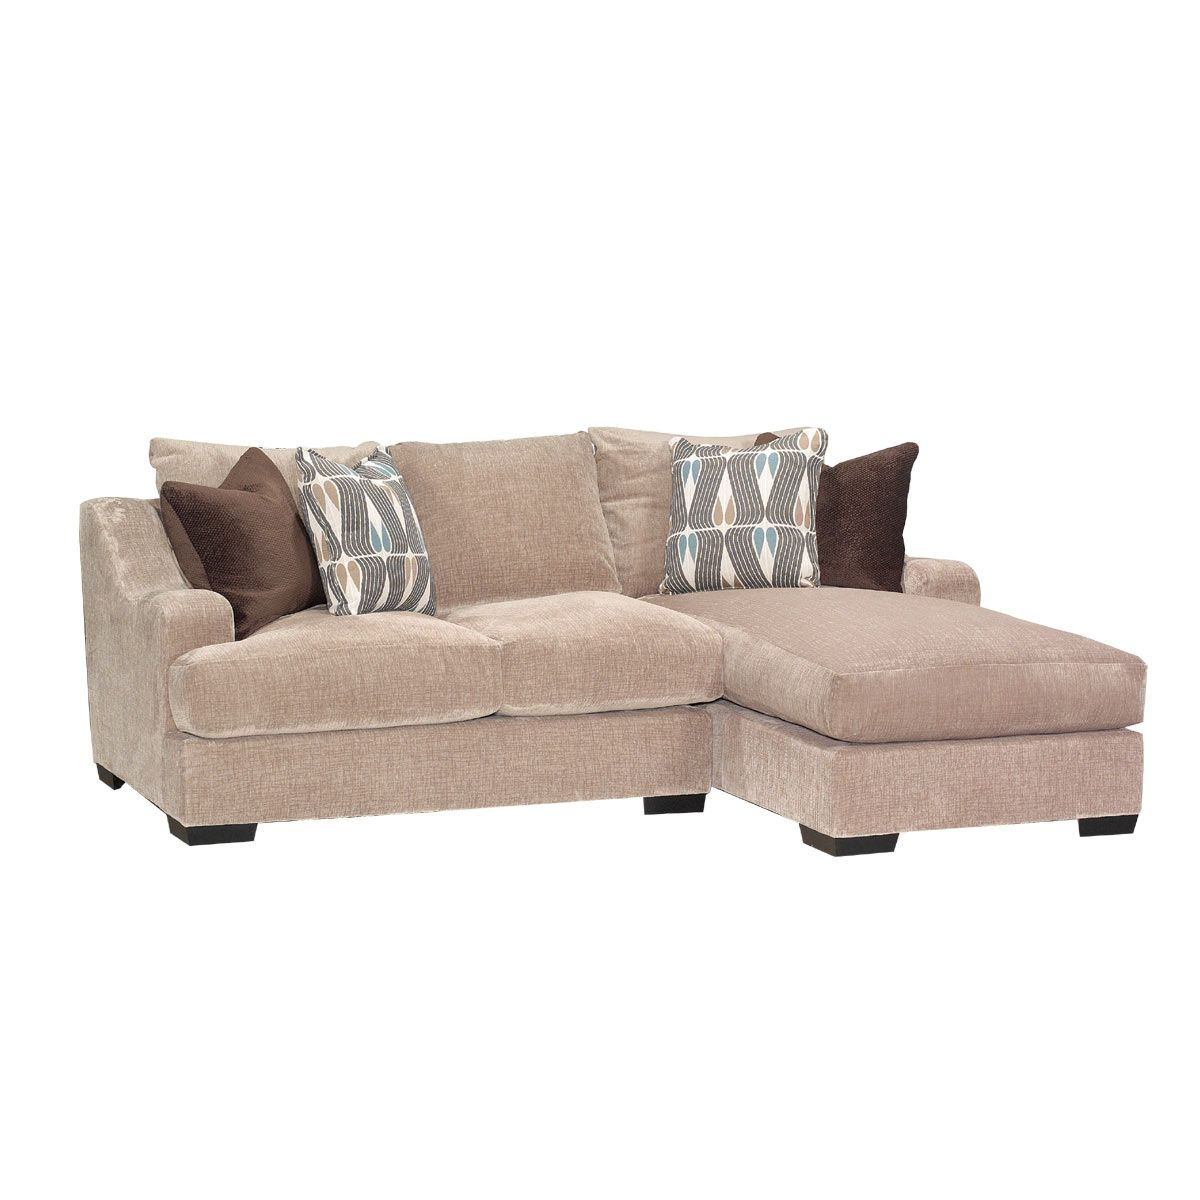 Stone Brown Casual Contemporary 2 Piece Sectional Throughout Recent 2pc Maddox Right Arm Facing Sectional Sofas With Chaise Brown (View 10 of 20)